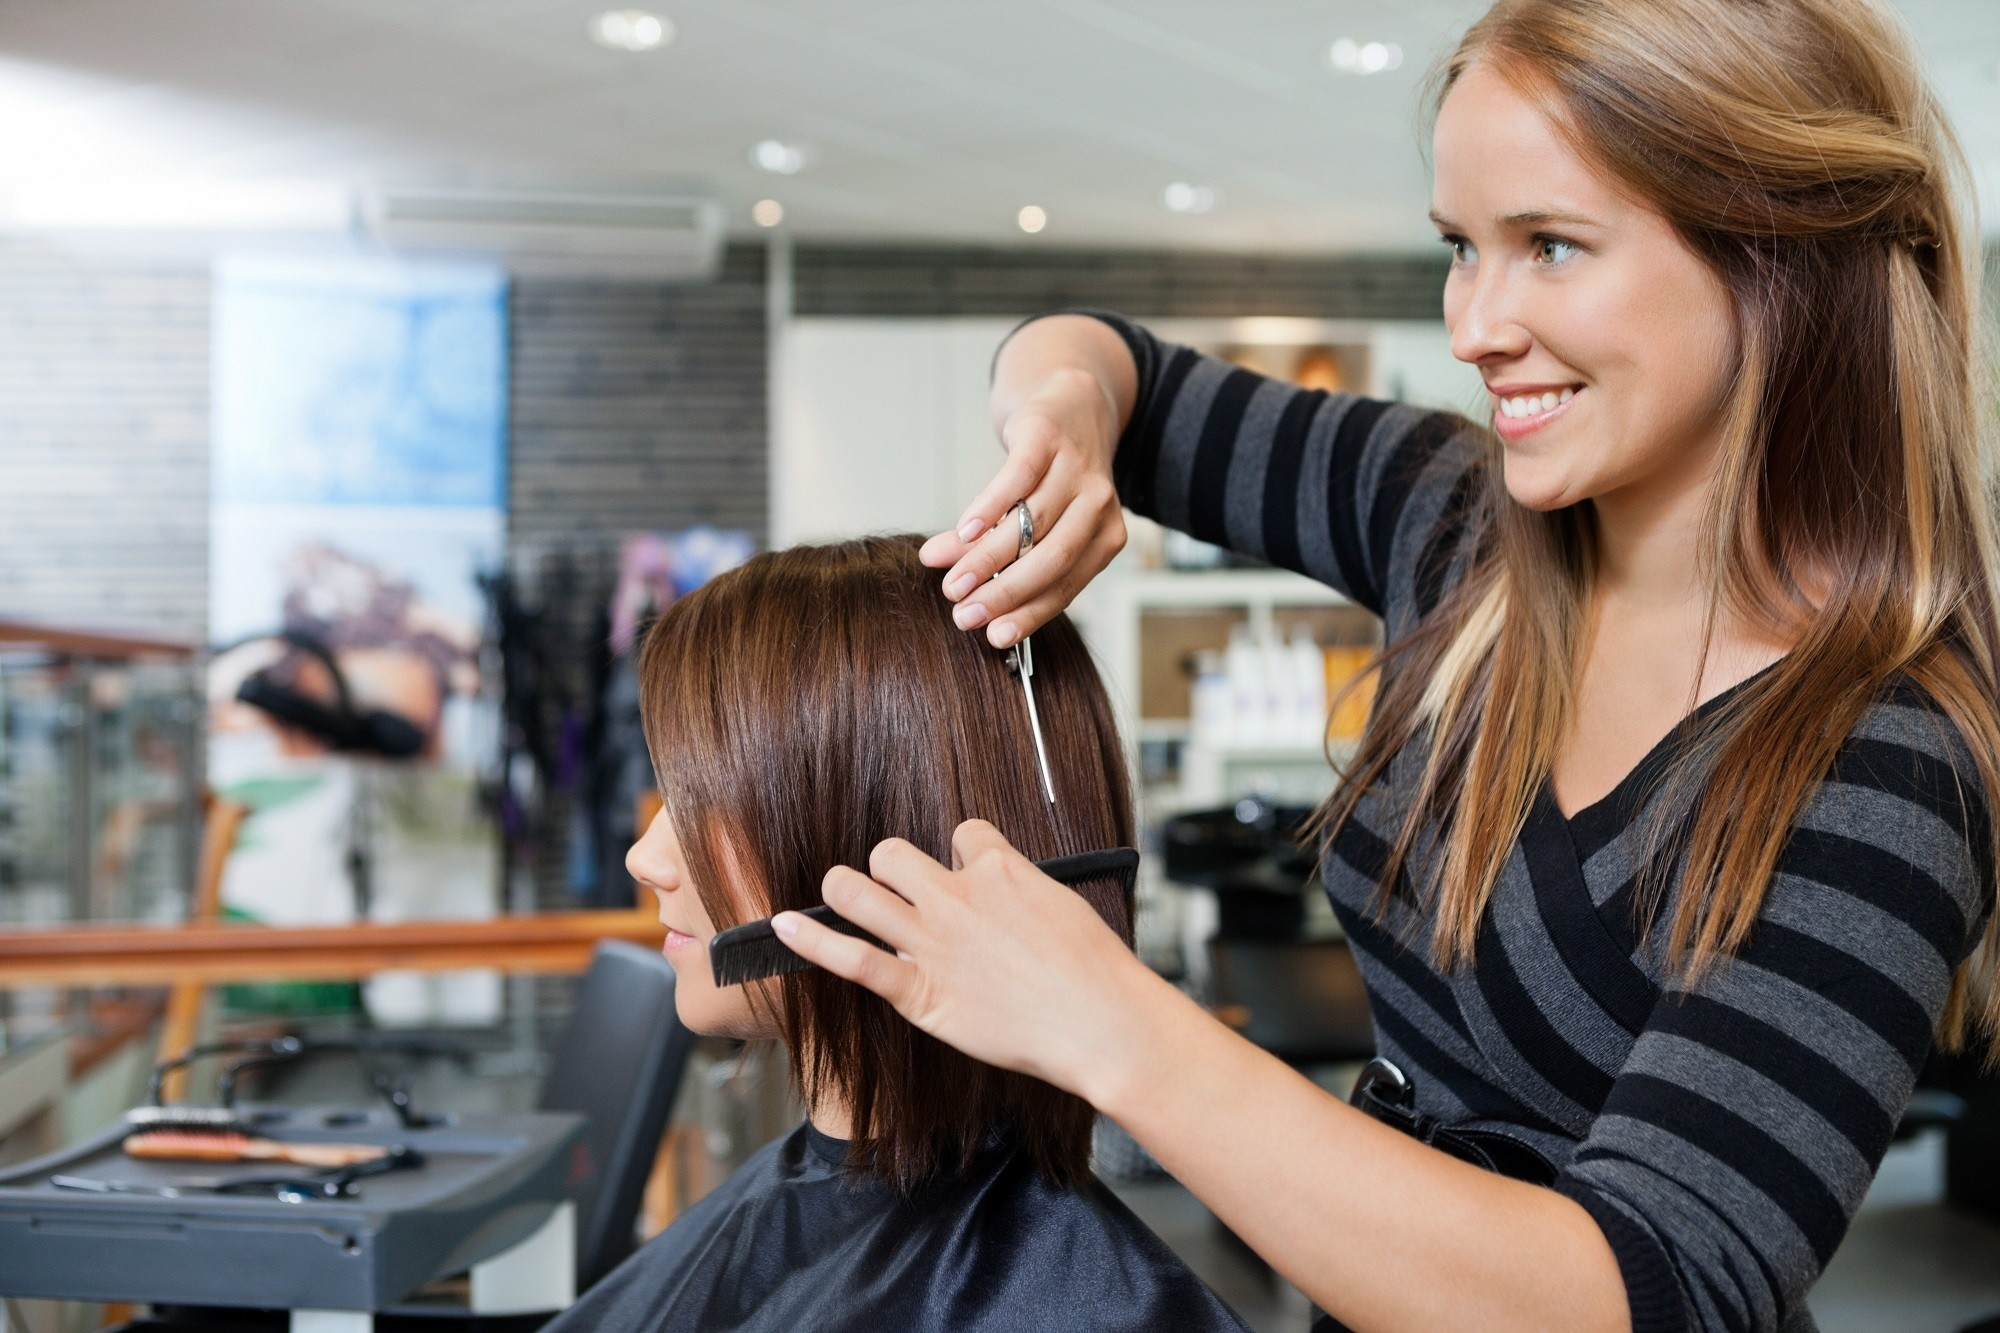 The best ways to Avoid Your Hair From Tangling